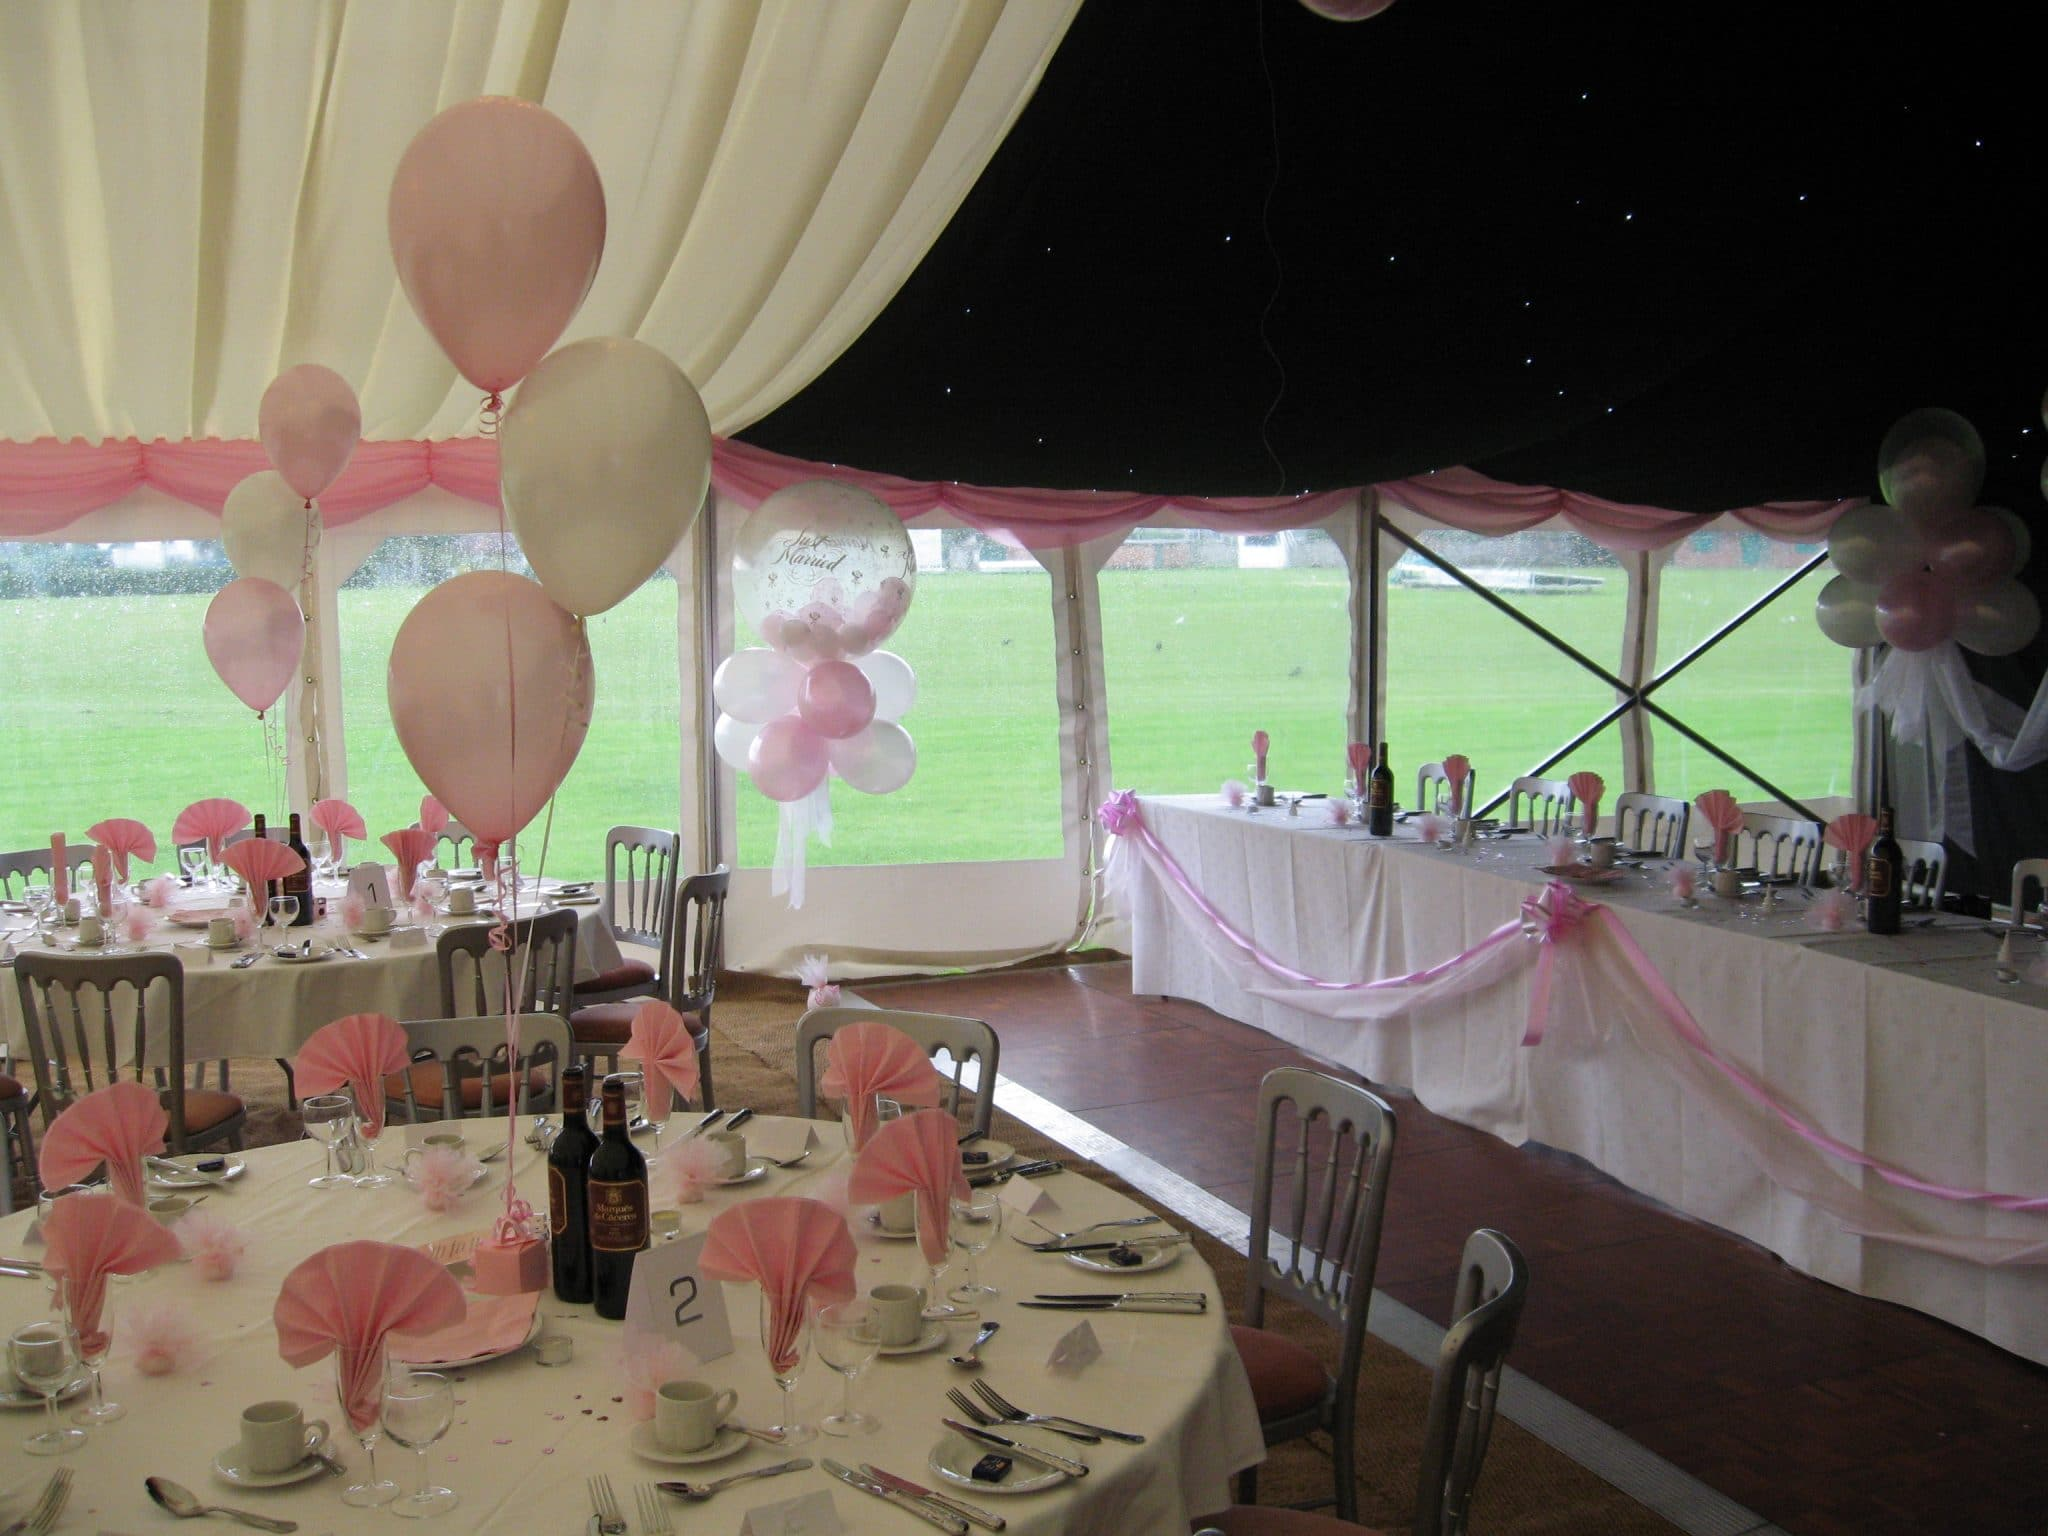 Cardiff Balloon decorate Penarth Athletic Club